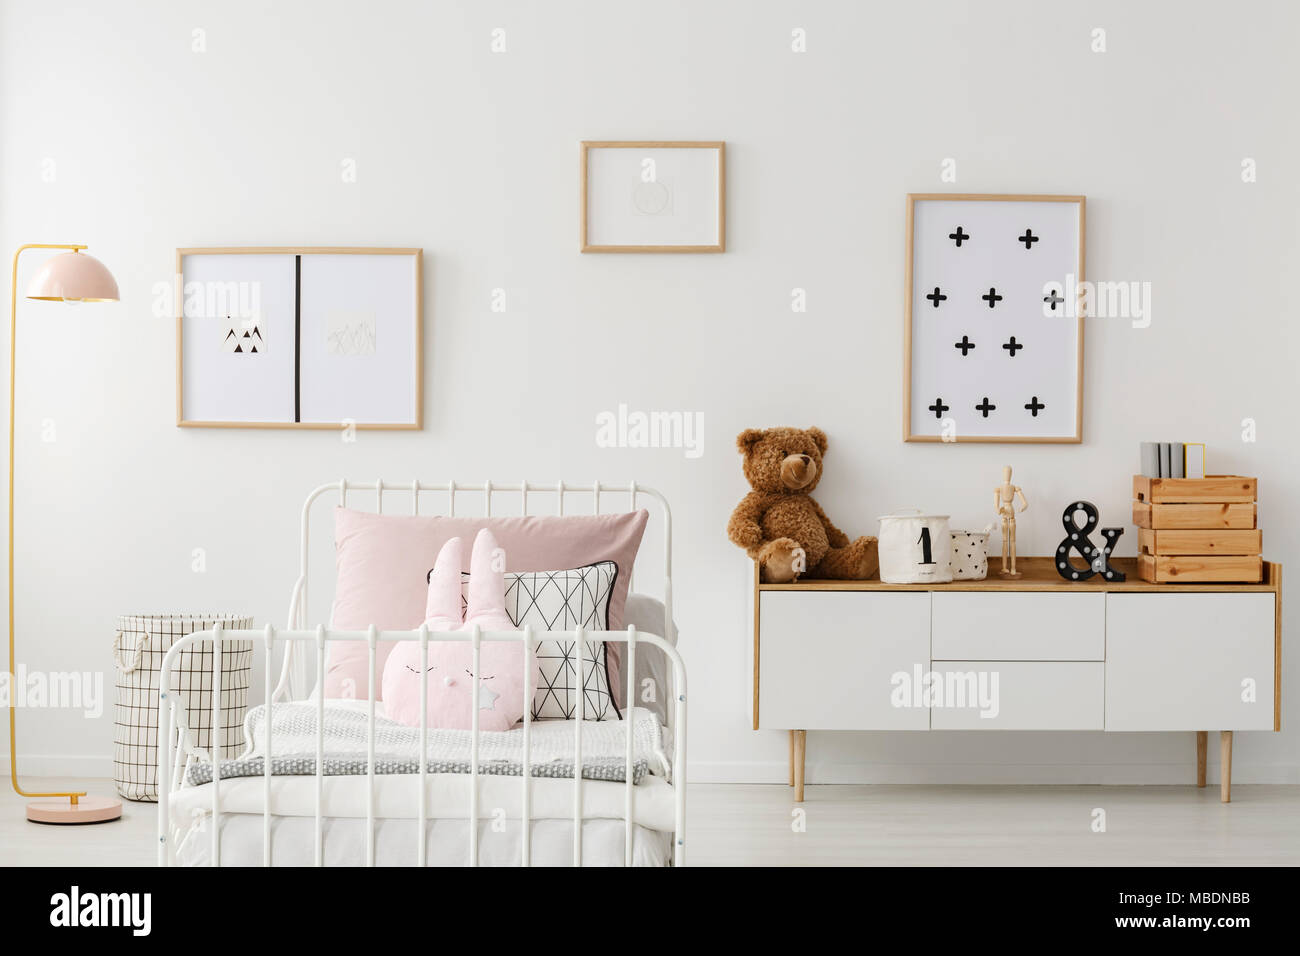 Plush Bear On White Cupboard Against The Wall With Posters In Kidu0027s Bedroom  Interior With Mockup